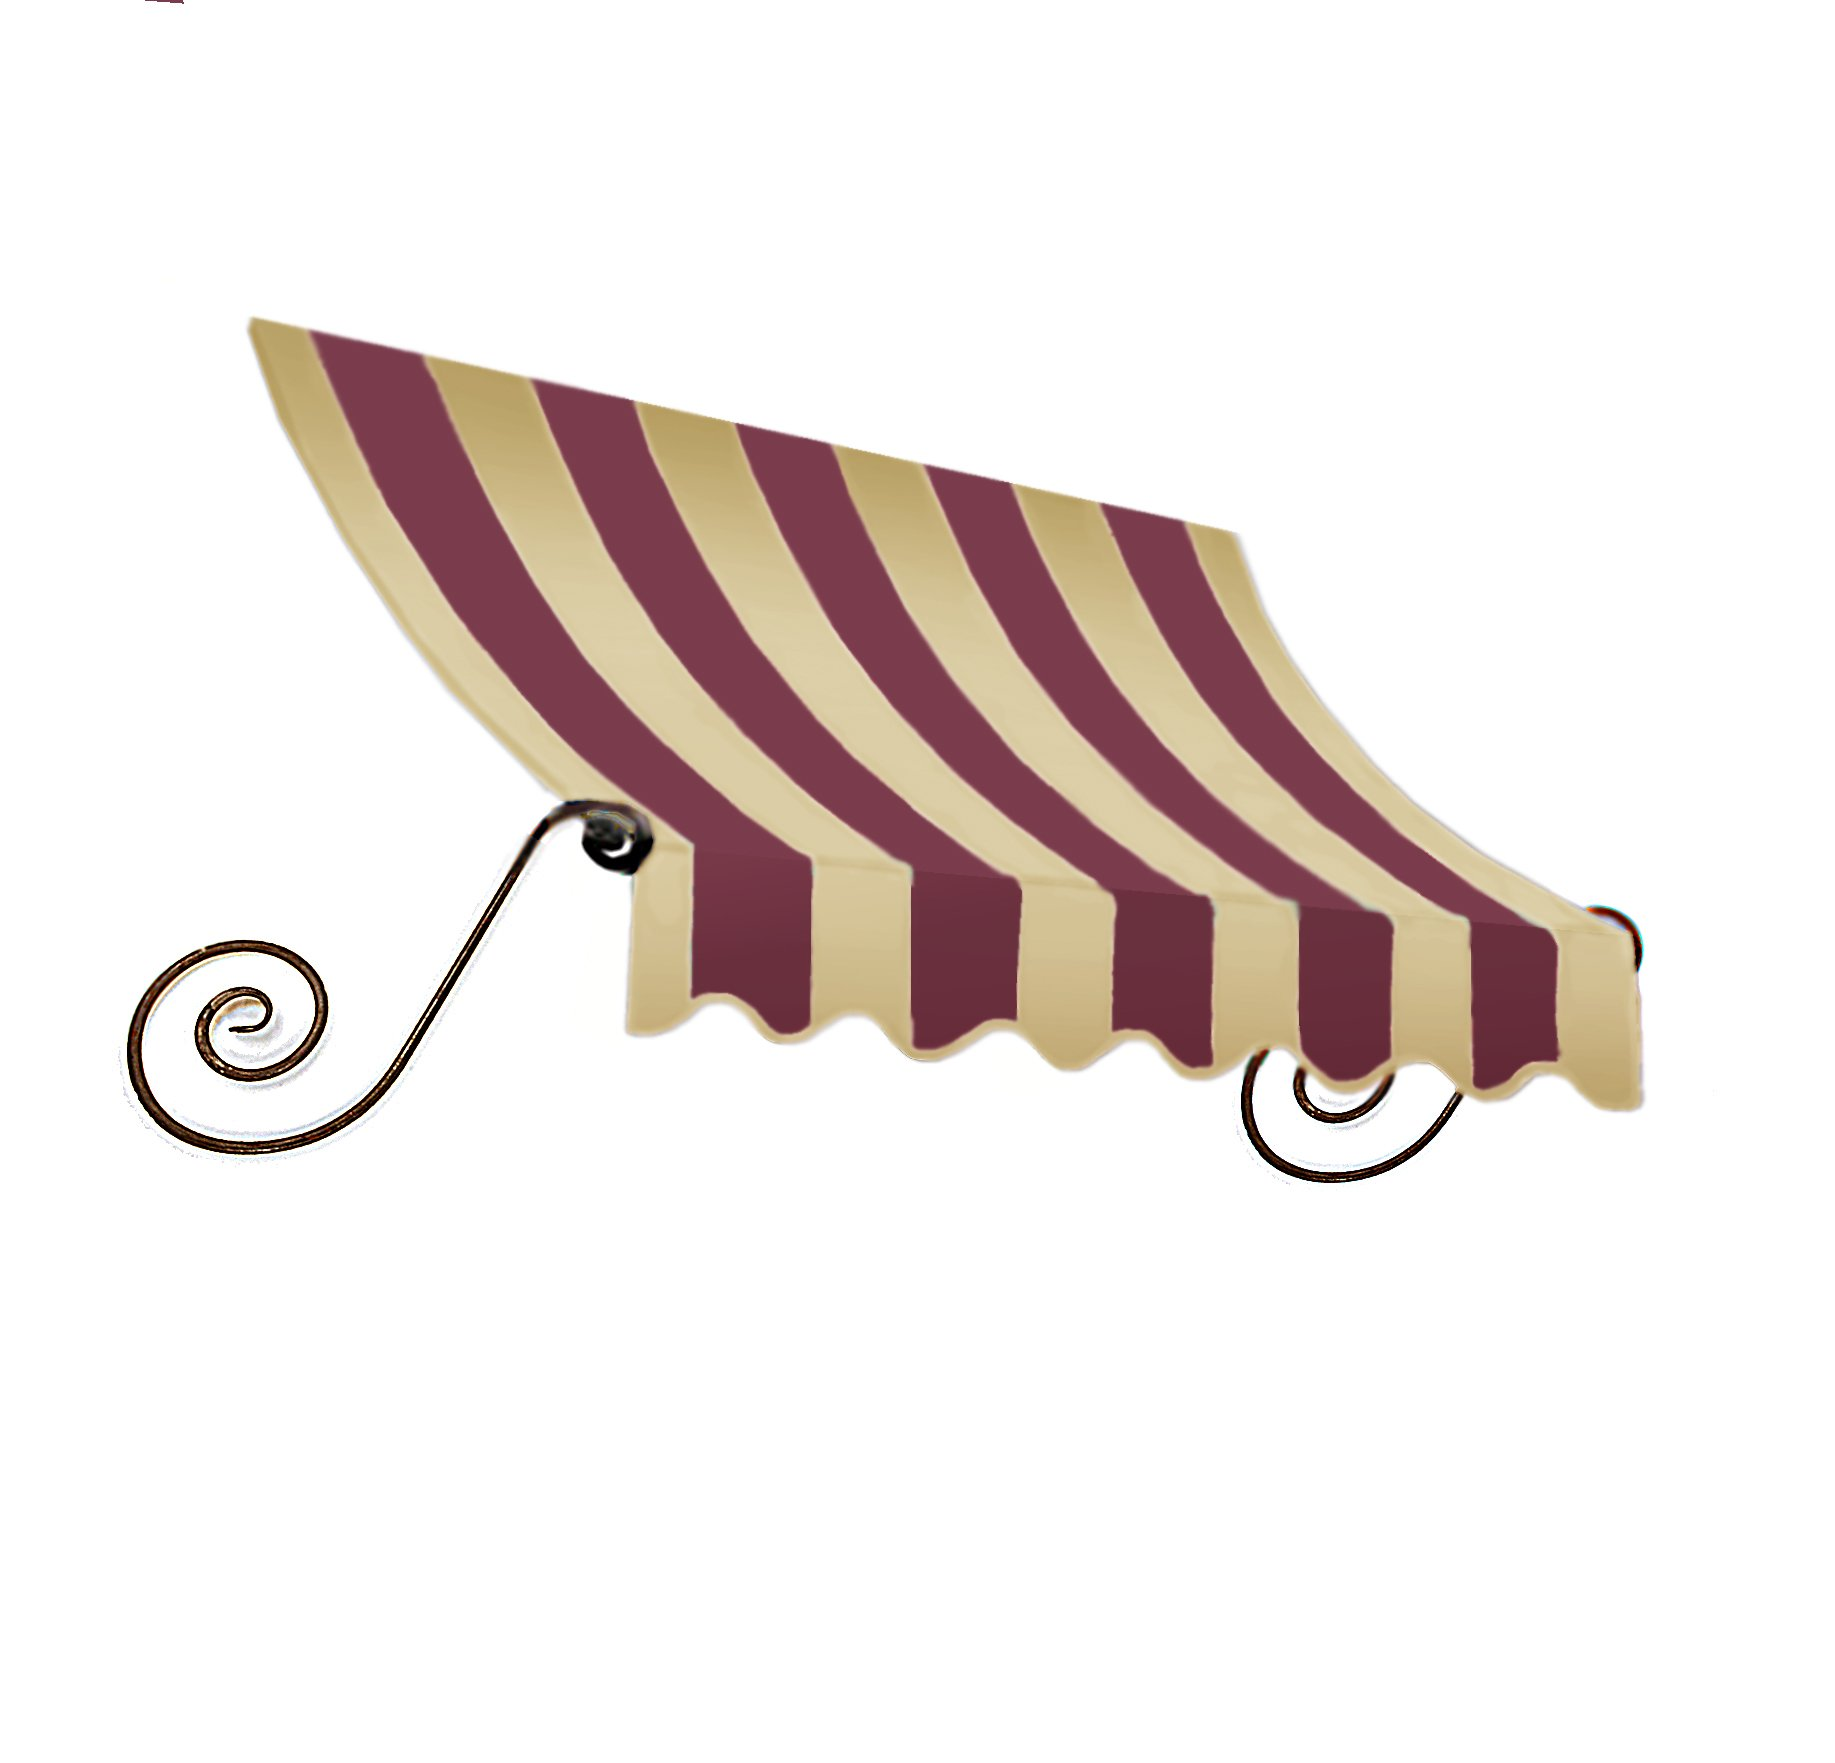 Awntech 3-Feet Charleston Window/Entry Awning, 44 by 36-Inch, Burgundy/Tan